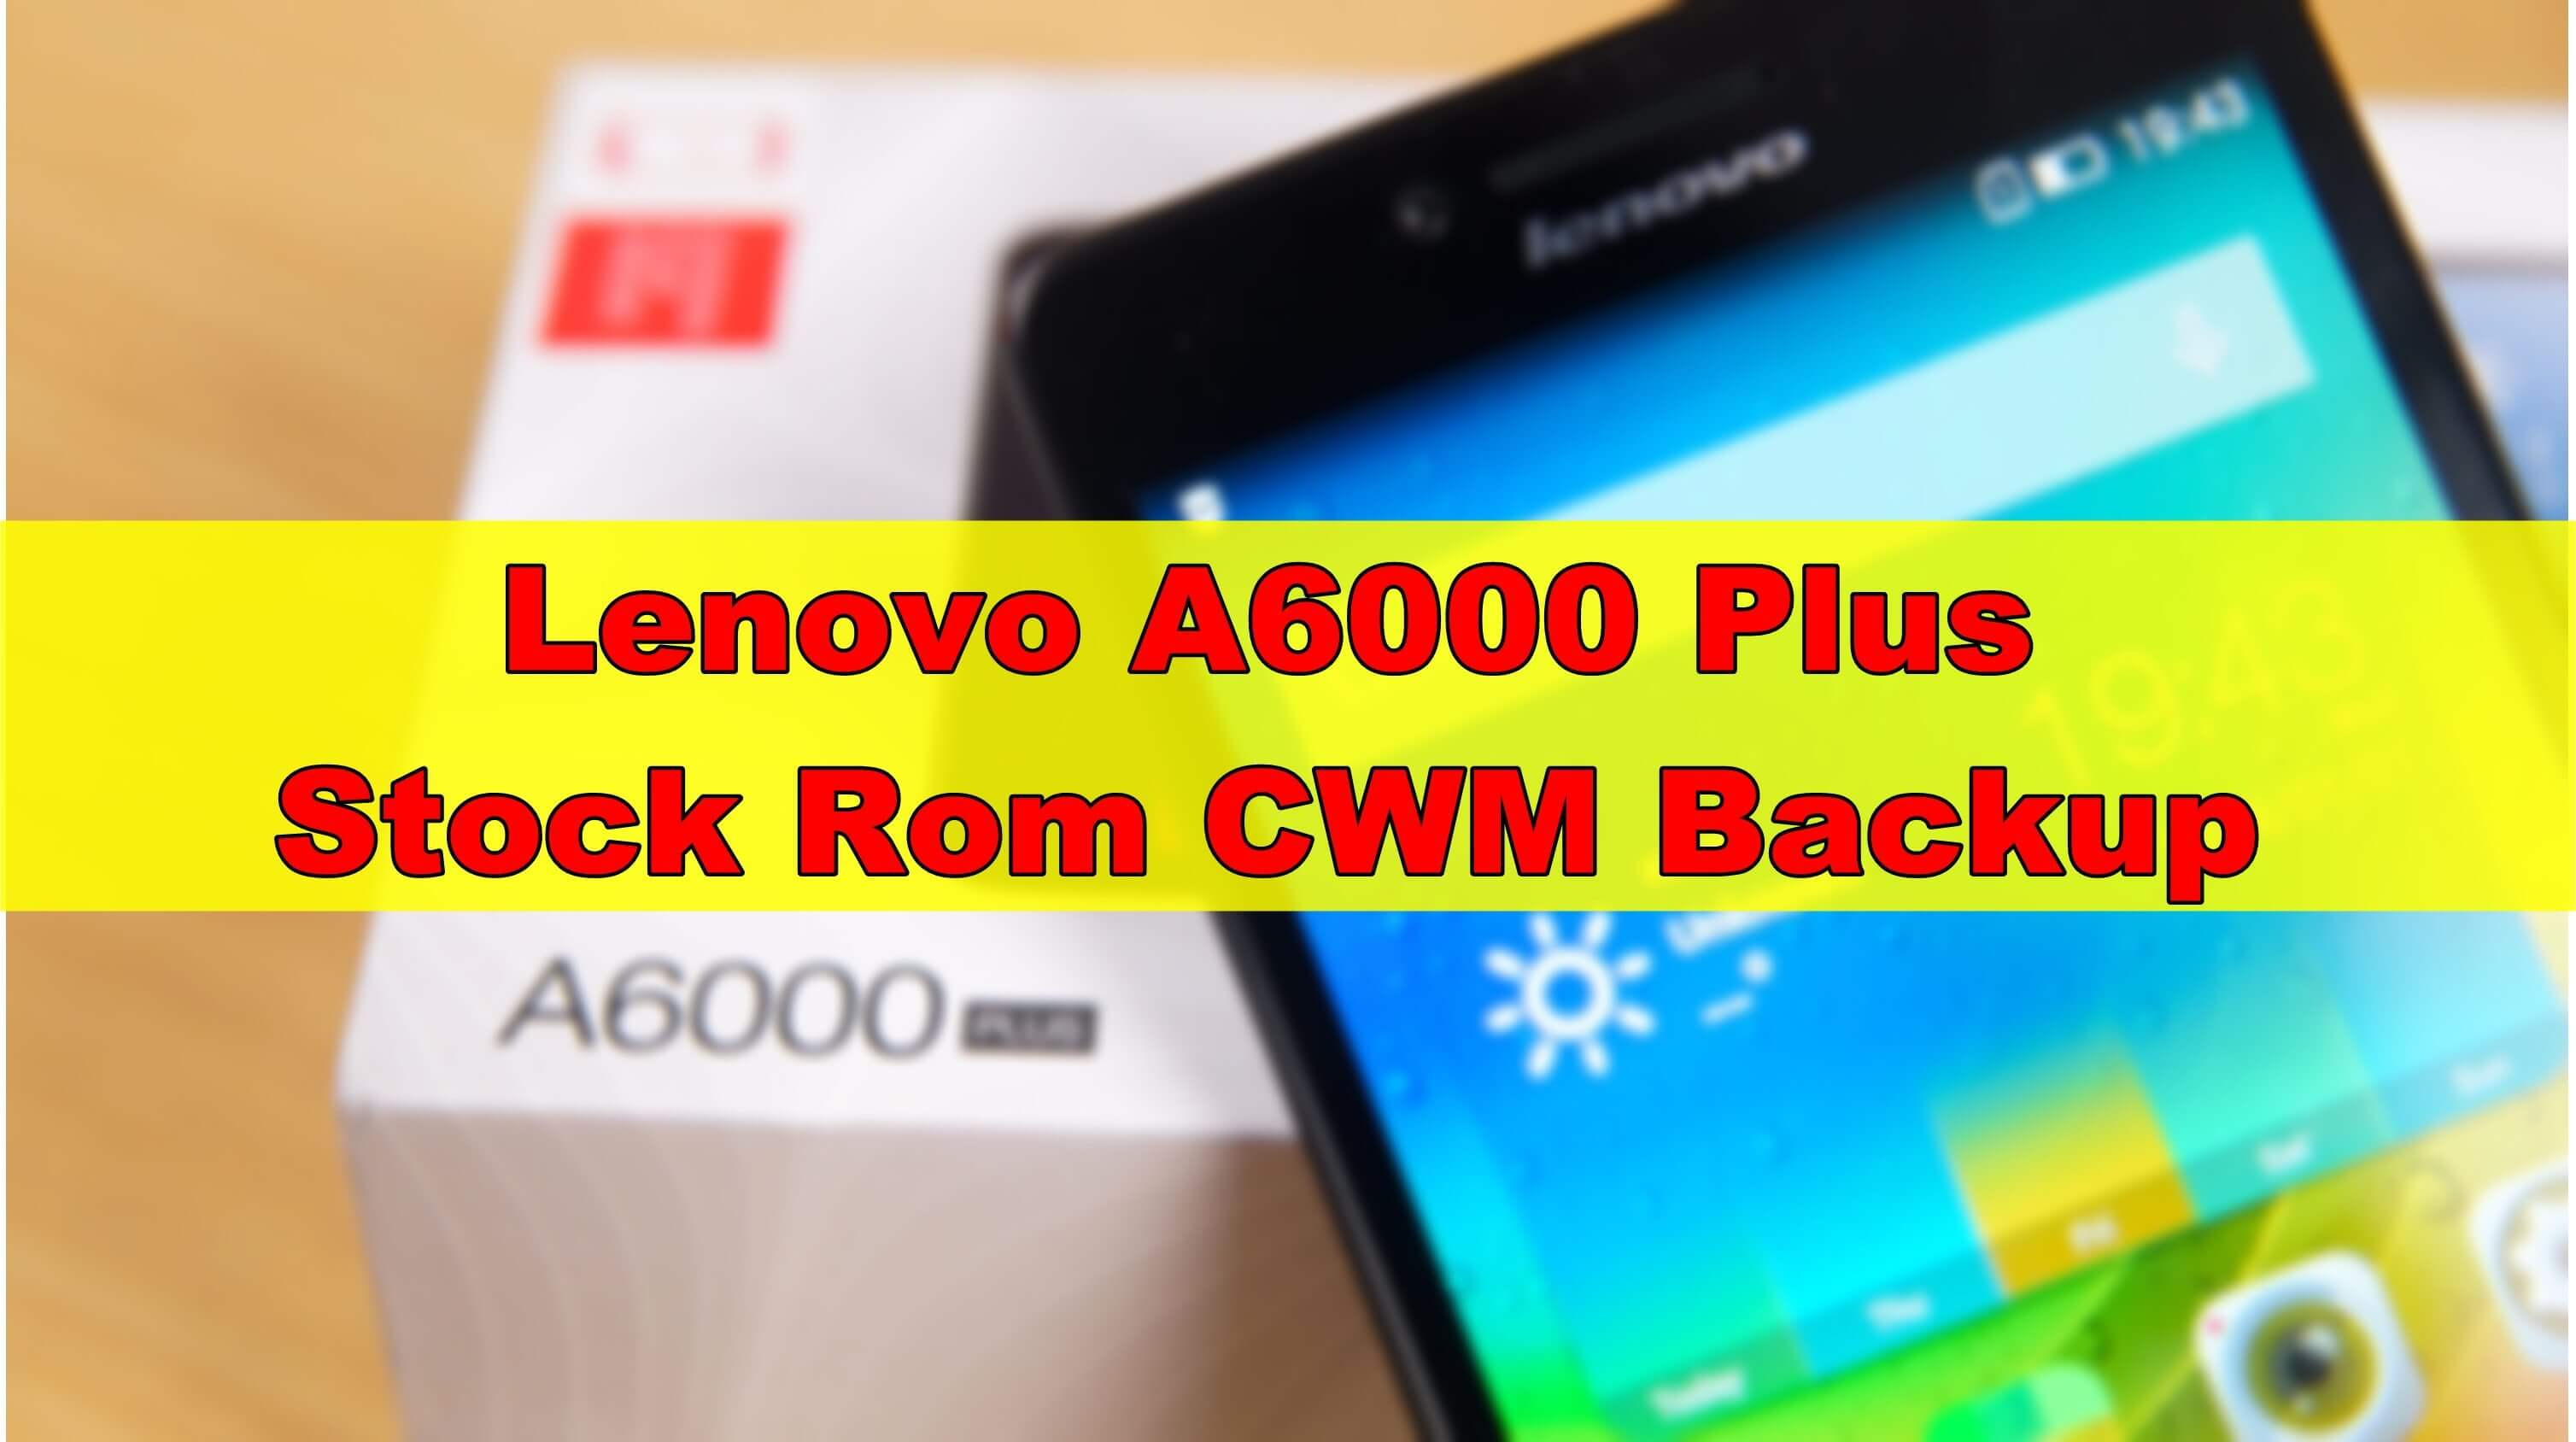 Lenovo A6000 Plus Stock Rom